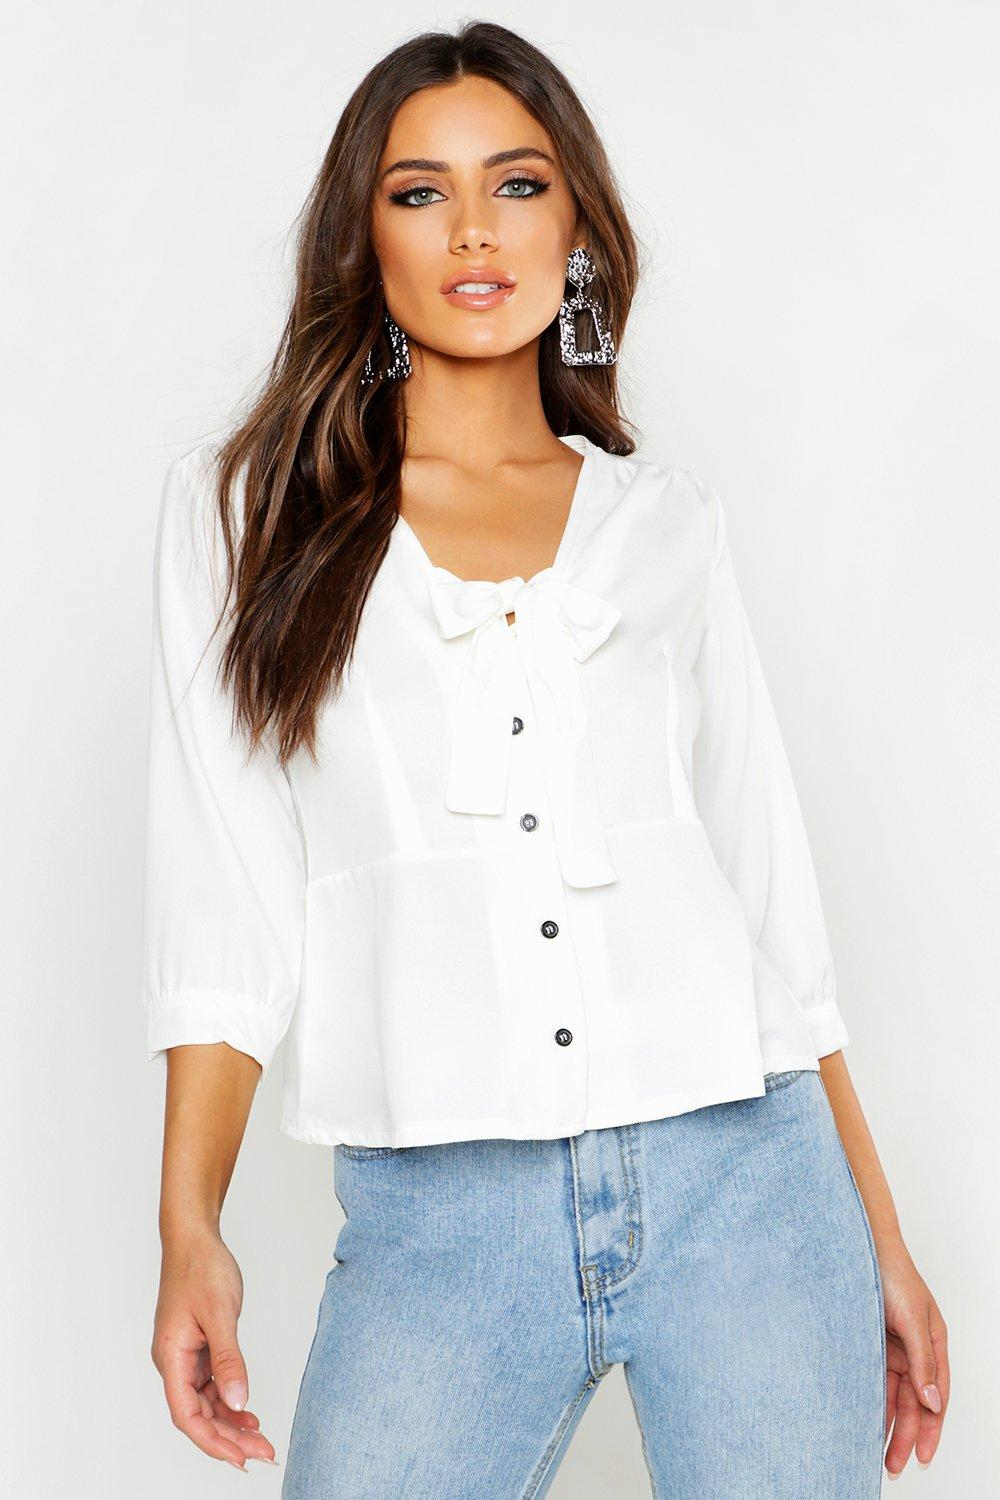 749211d864e96 Woven Tie Front Blouse. Hover to zoom